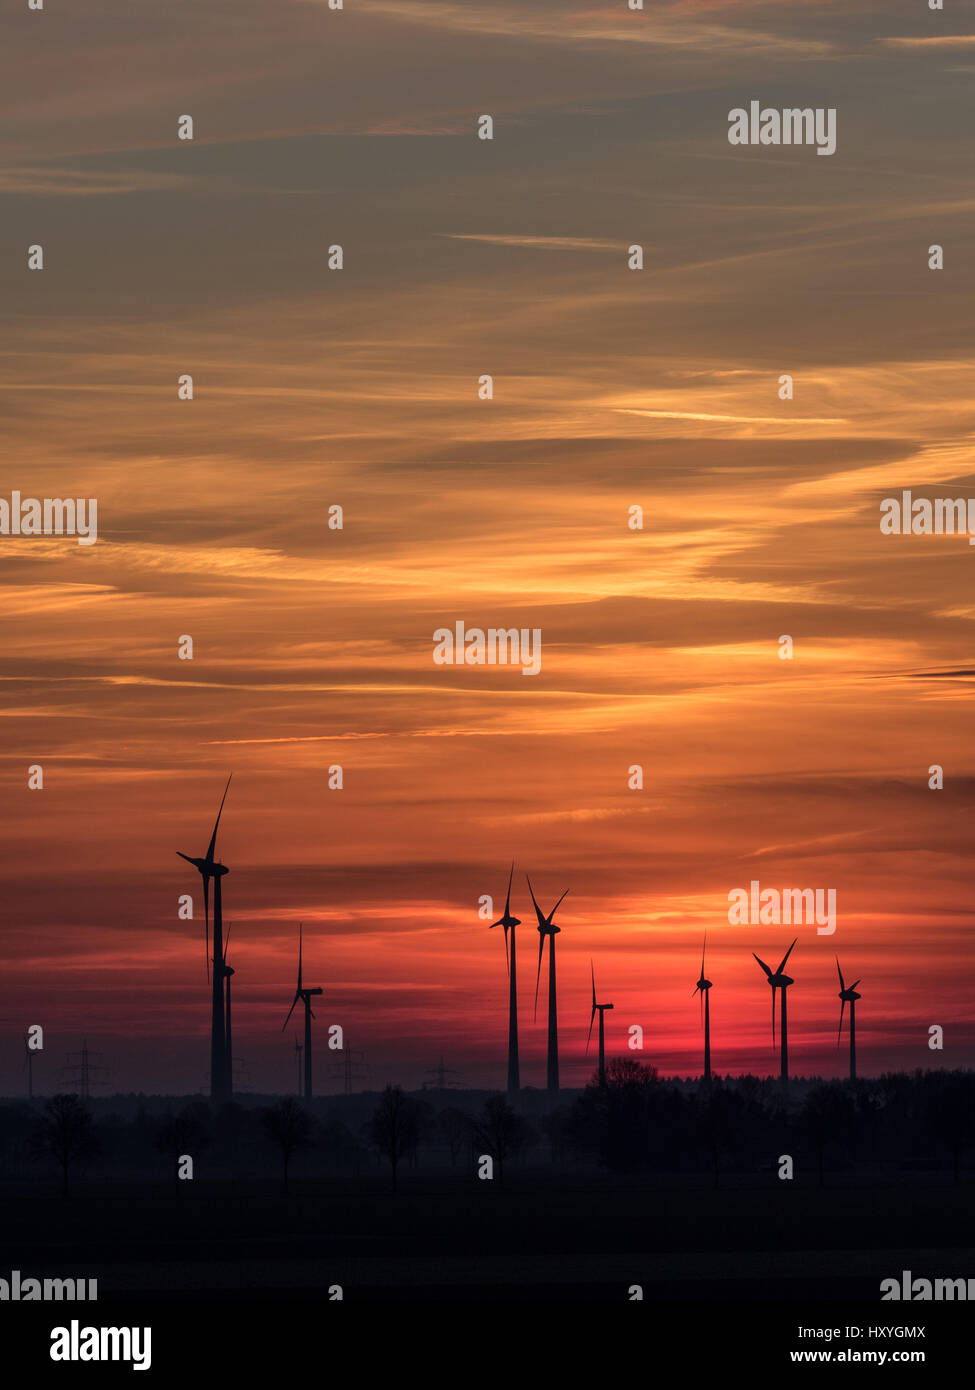 Wind power plants at sundown with colorful clouds and sky - Stock Image